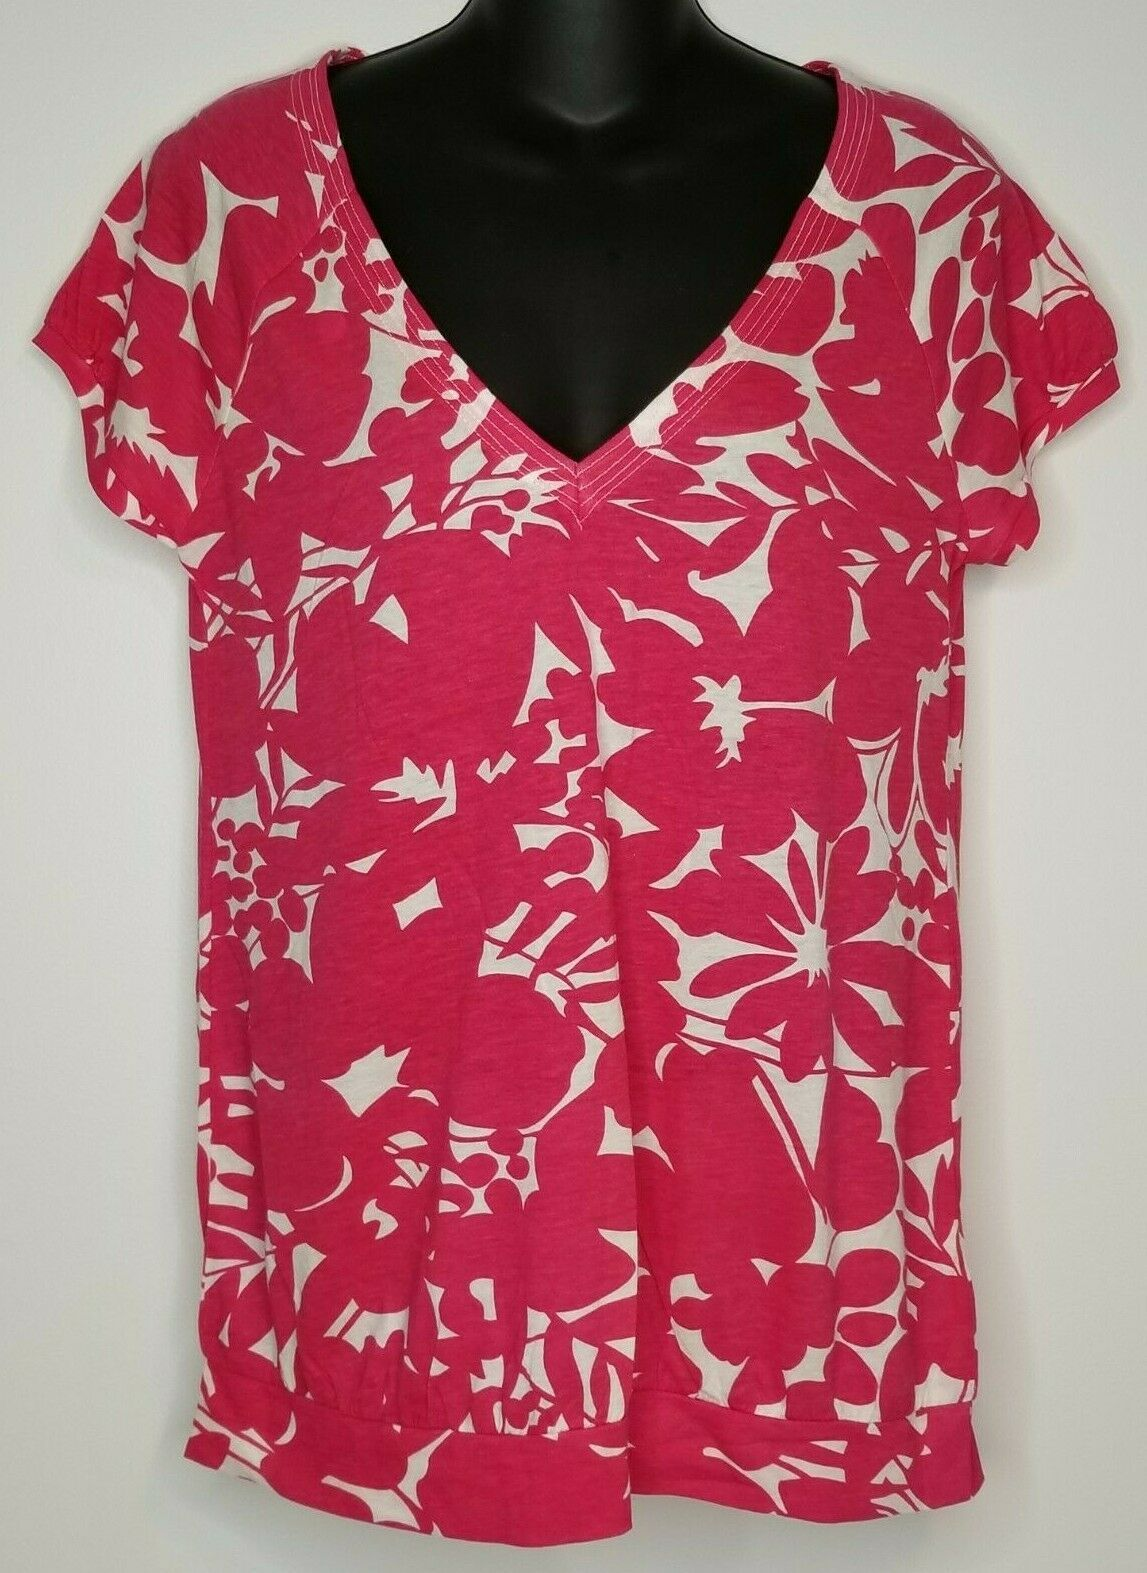 Primary image for American Eagle Outfitters Womens Pink White Shirt Top Sz Large NEW Short Sleeve